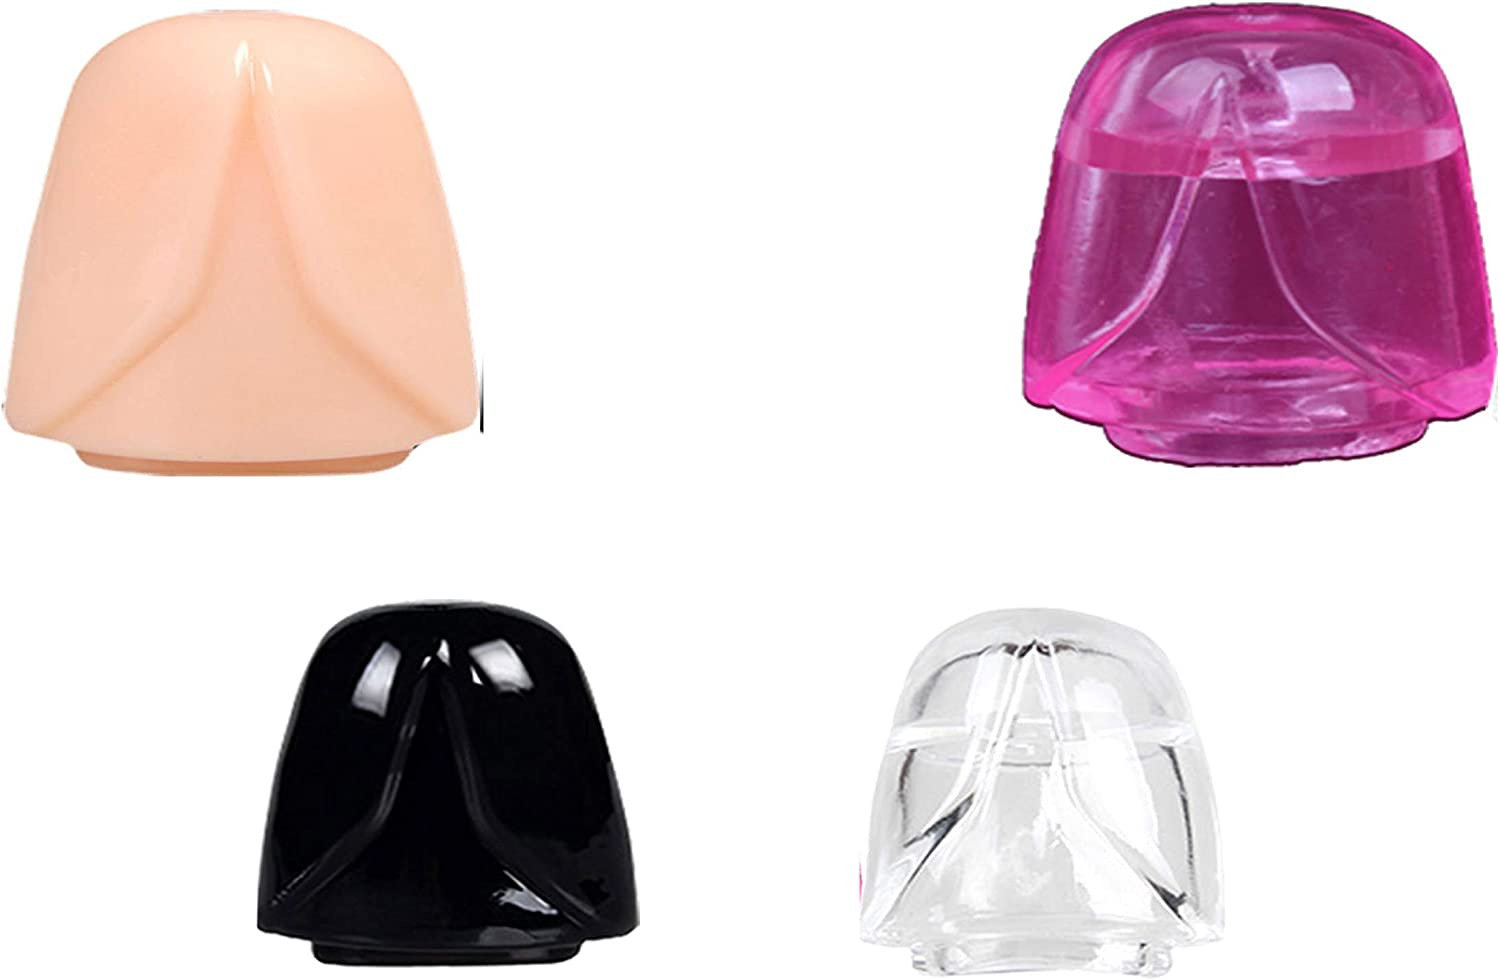 Iedogo Silicone Protection Headgear Instantly Increases The Effect